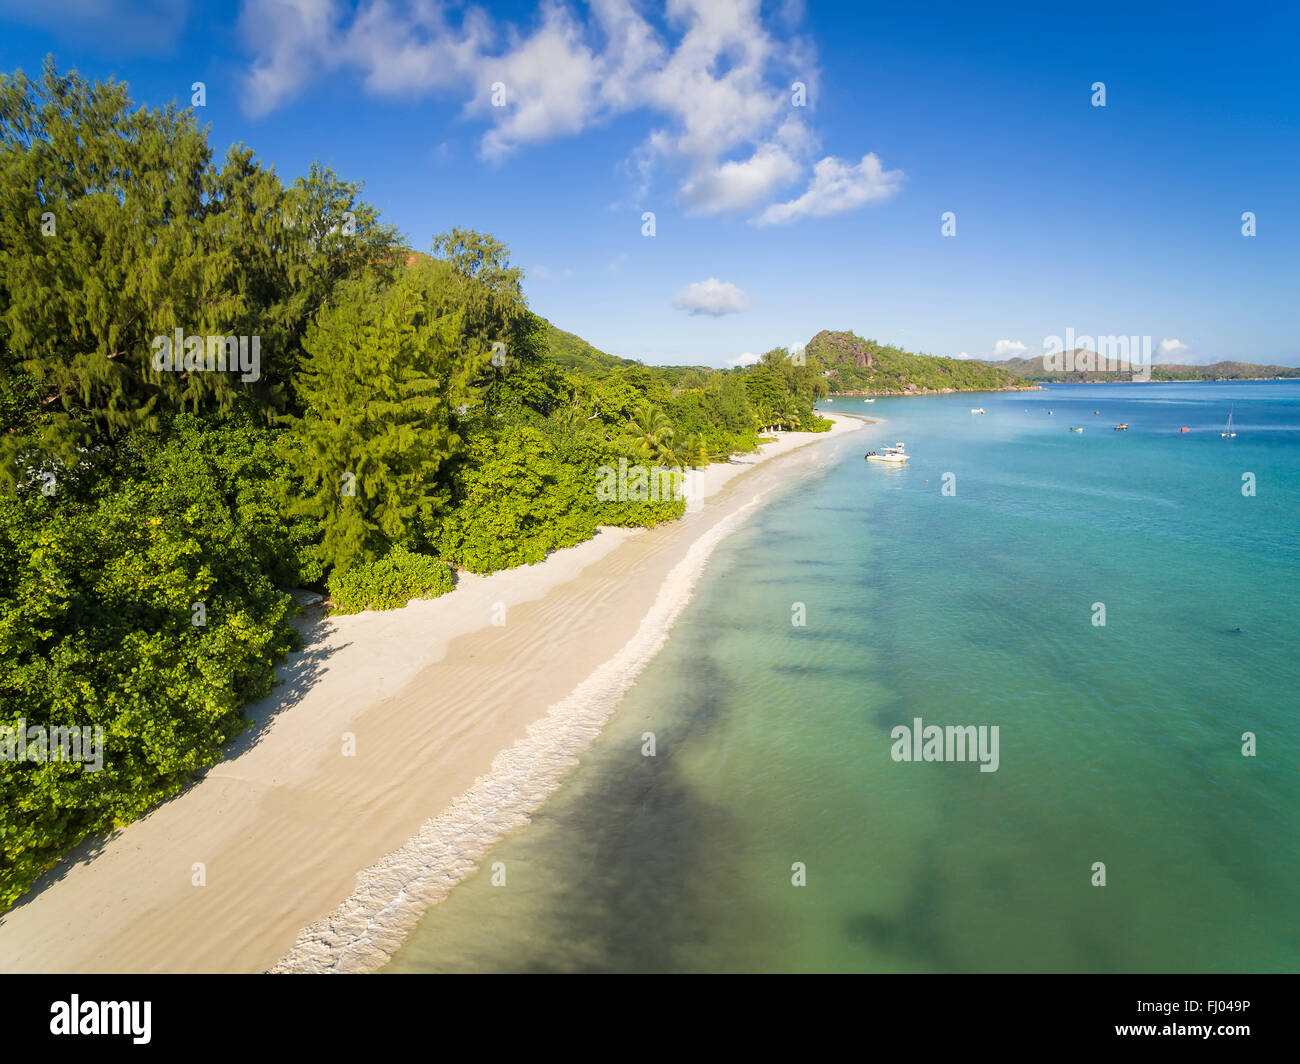 Seychelles, Praslin, Anse Lazio, aerial view Stock Photo